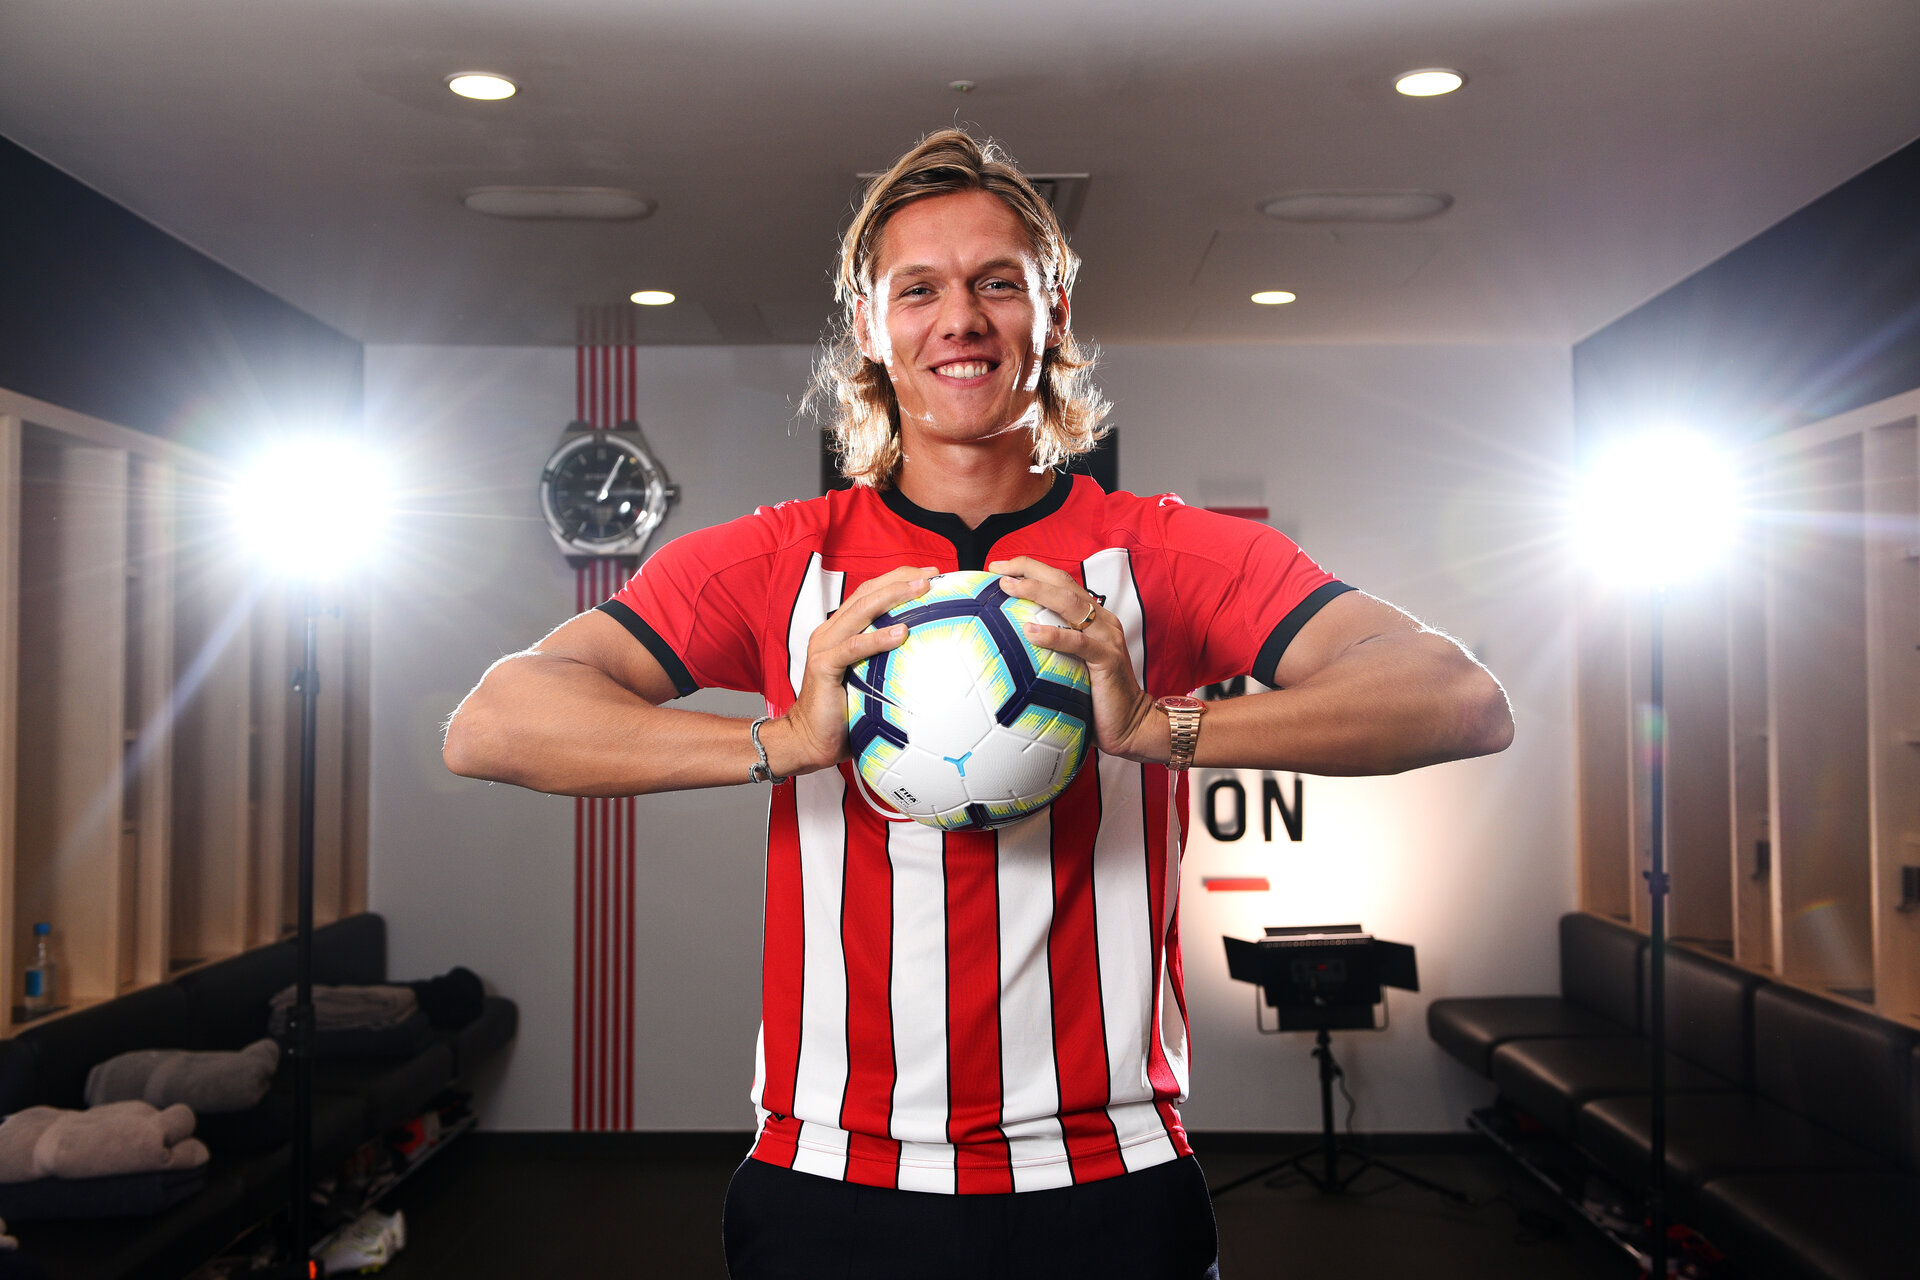 SOUTHAMPTON, ENGLAND - JULY 11: Southampton FC sign Defender Jannik Vestergaard pictured at Staplewood Complex on July 11, 2018 in Southampton, England. (Photo by James Bridle - Southampton FC/Southampton FC via Getty Images)